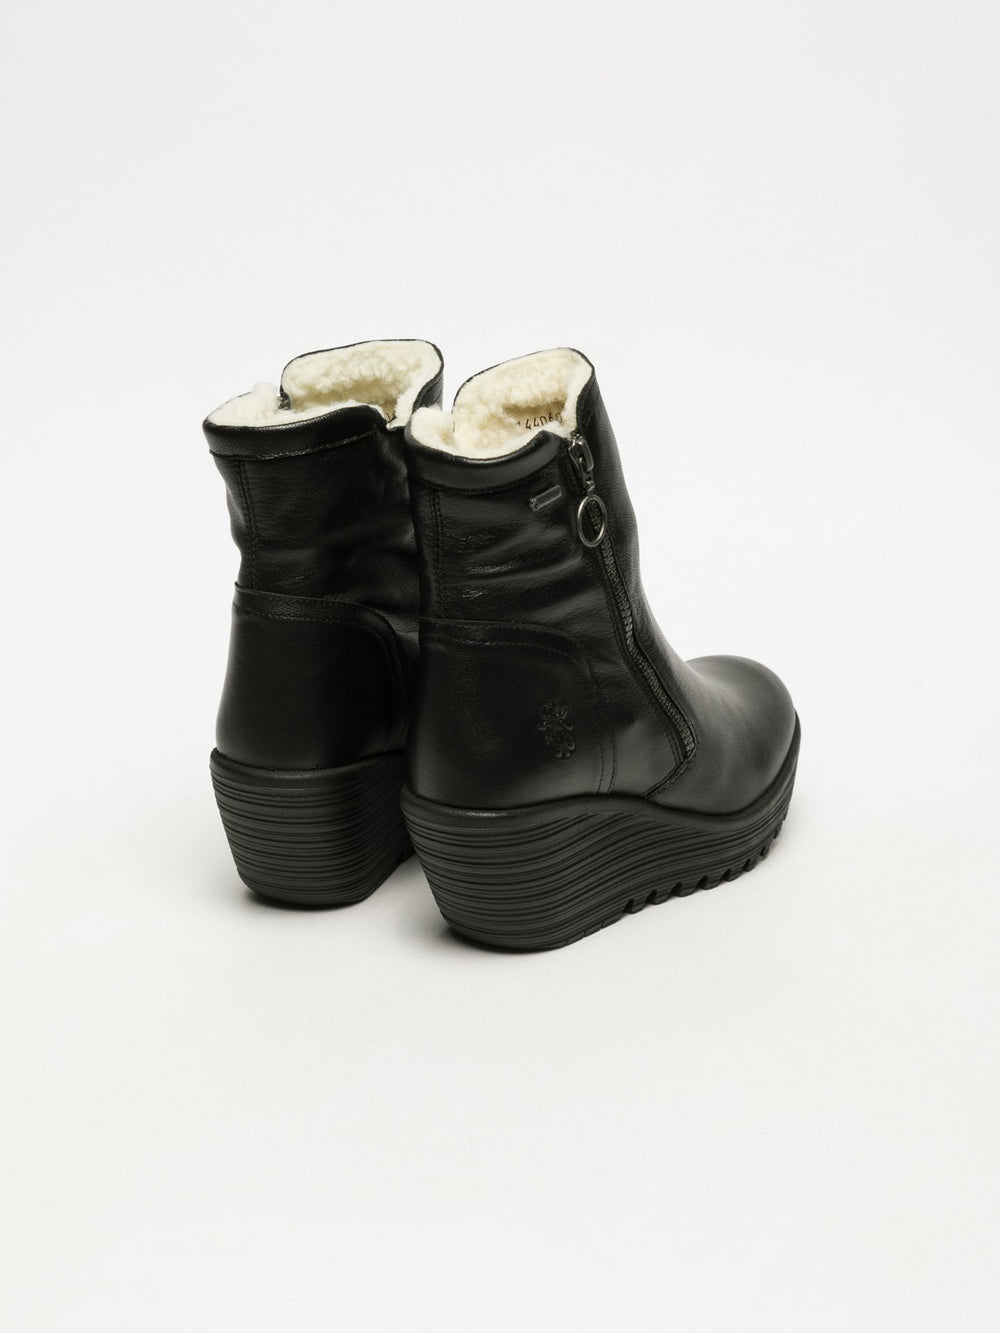 Zip Up Ankle Boots YOLK060FLY BLACK (WARM LINING)